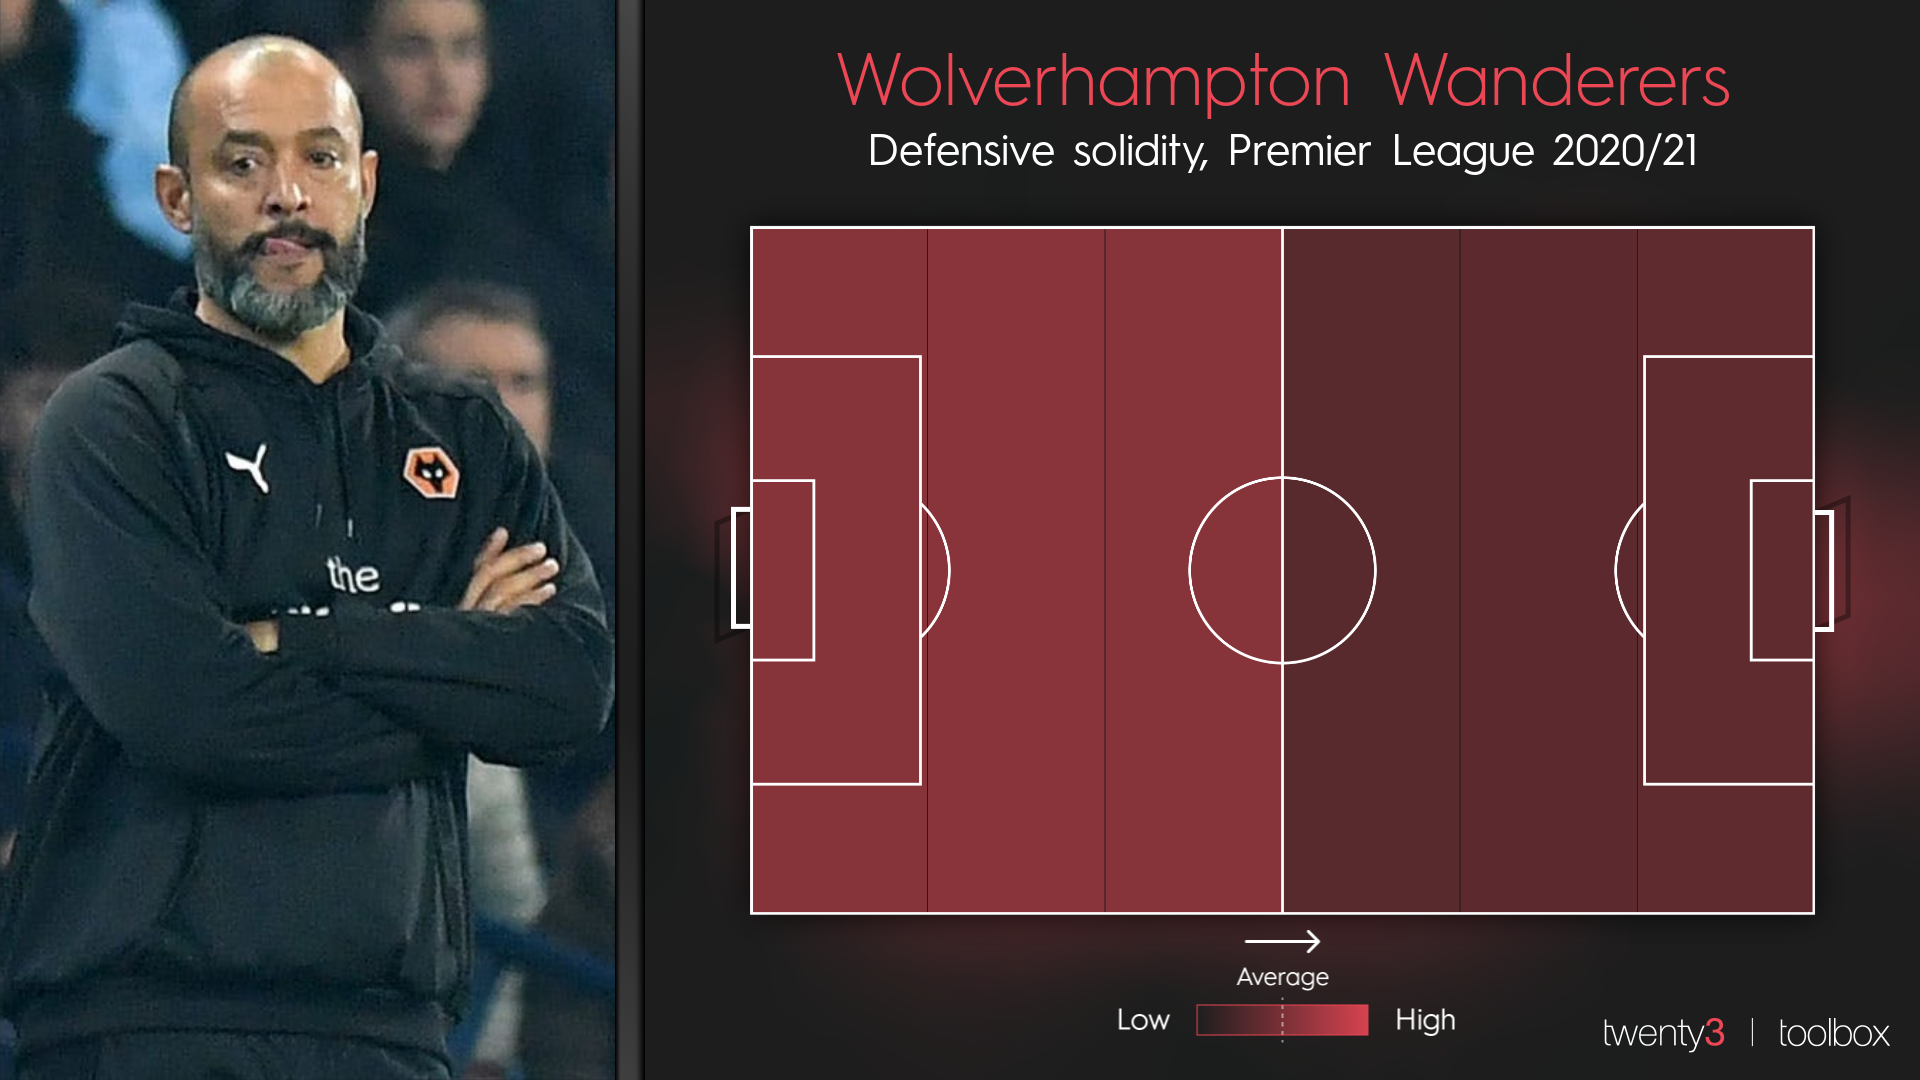 Wolves' defensive solidity in the 2020/21 Premier League season so far